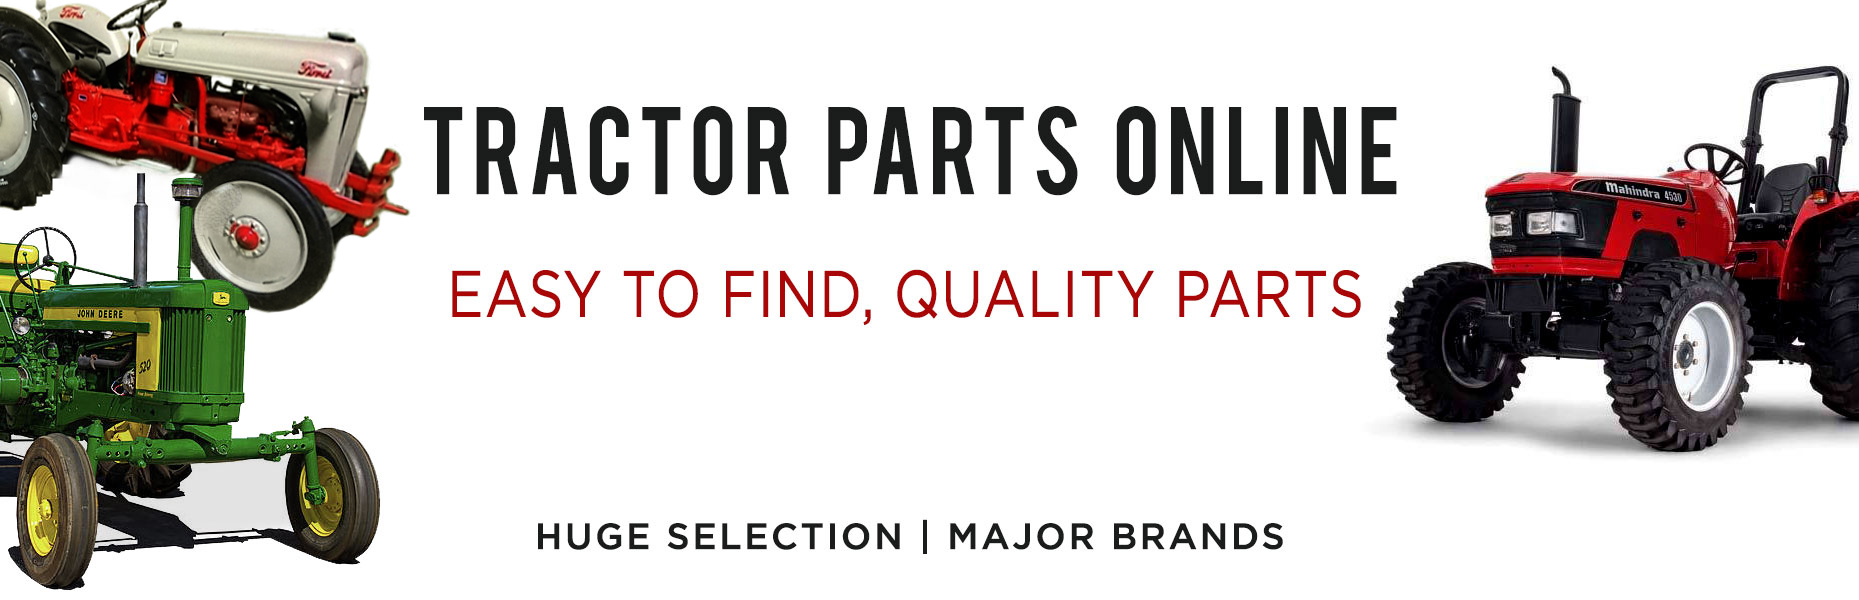 Huge Inventory of Tractor Parts | Lawn Mower Parts Online ... on